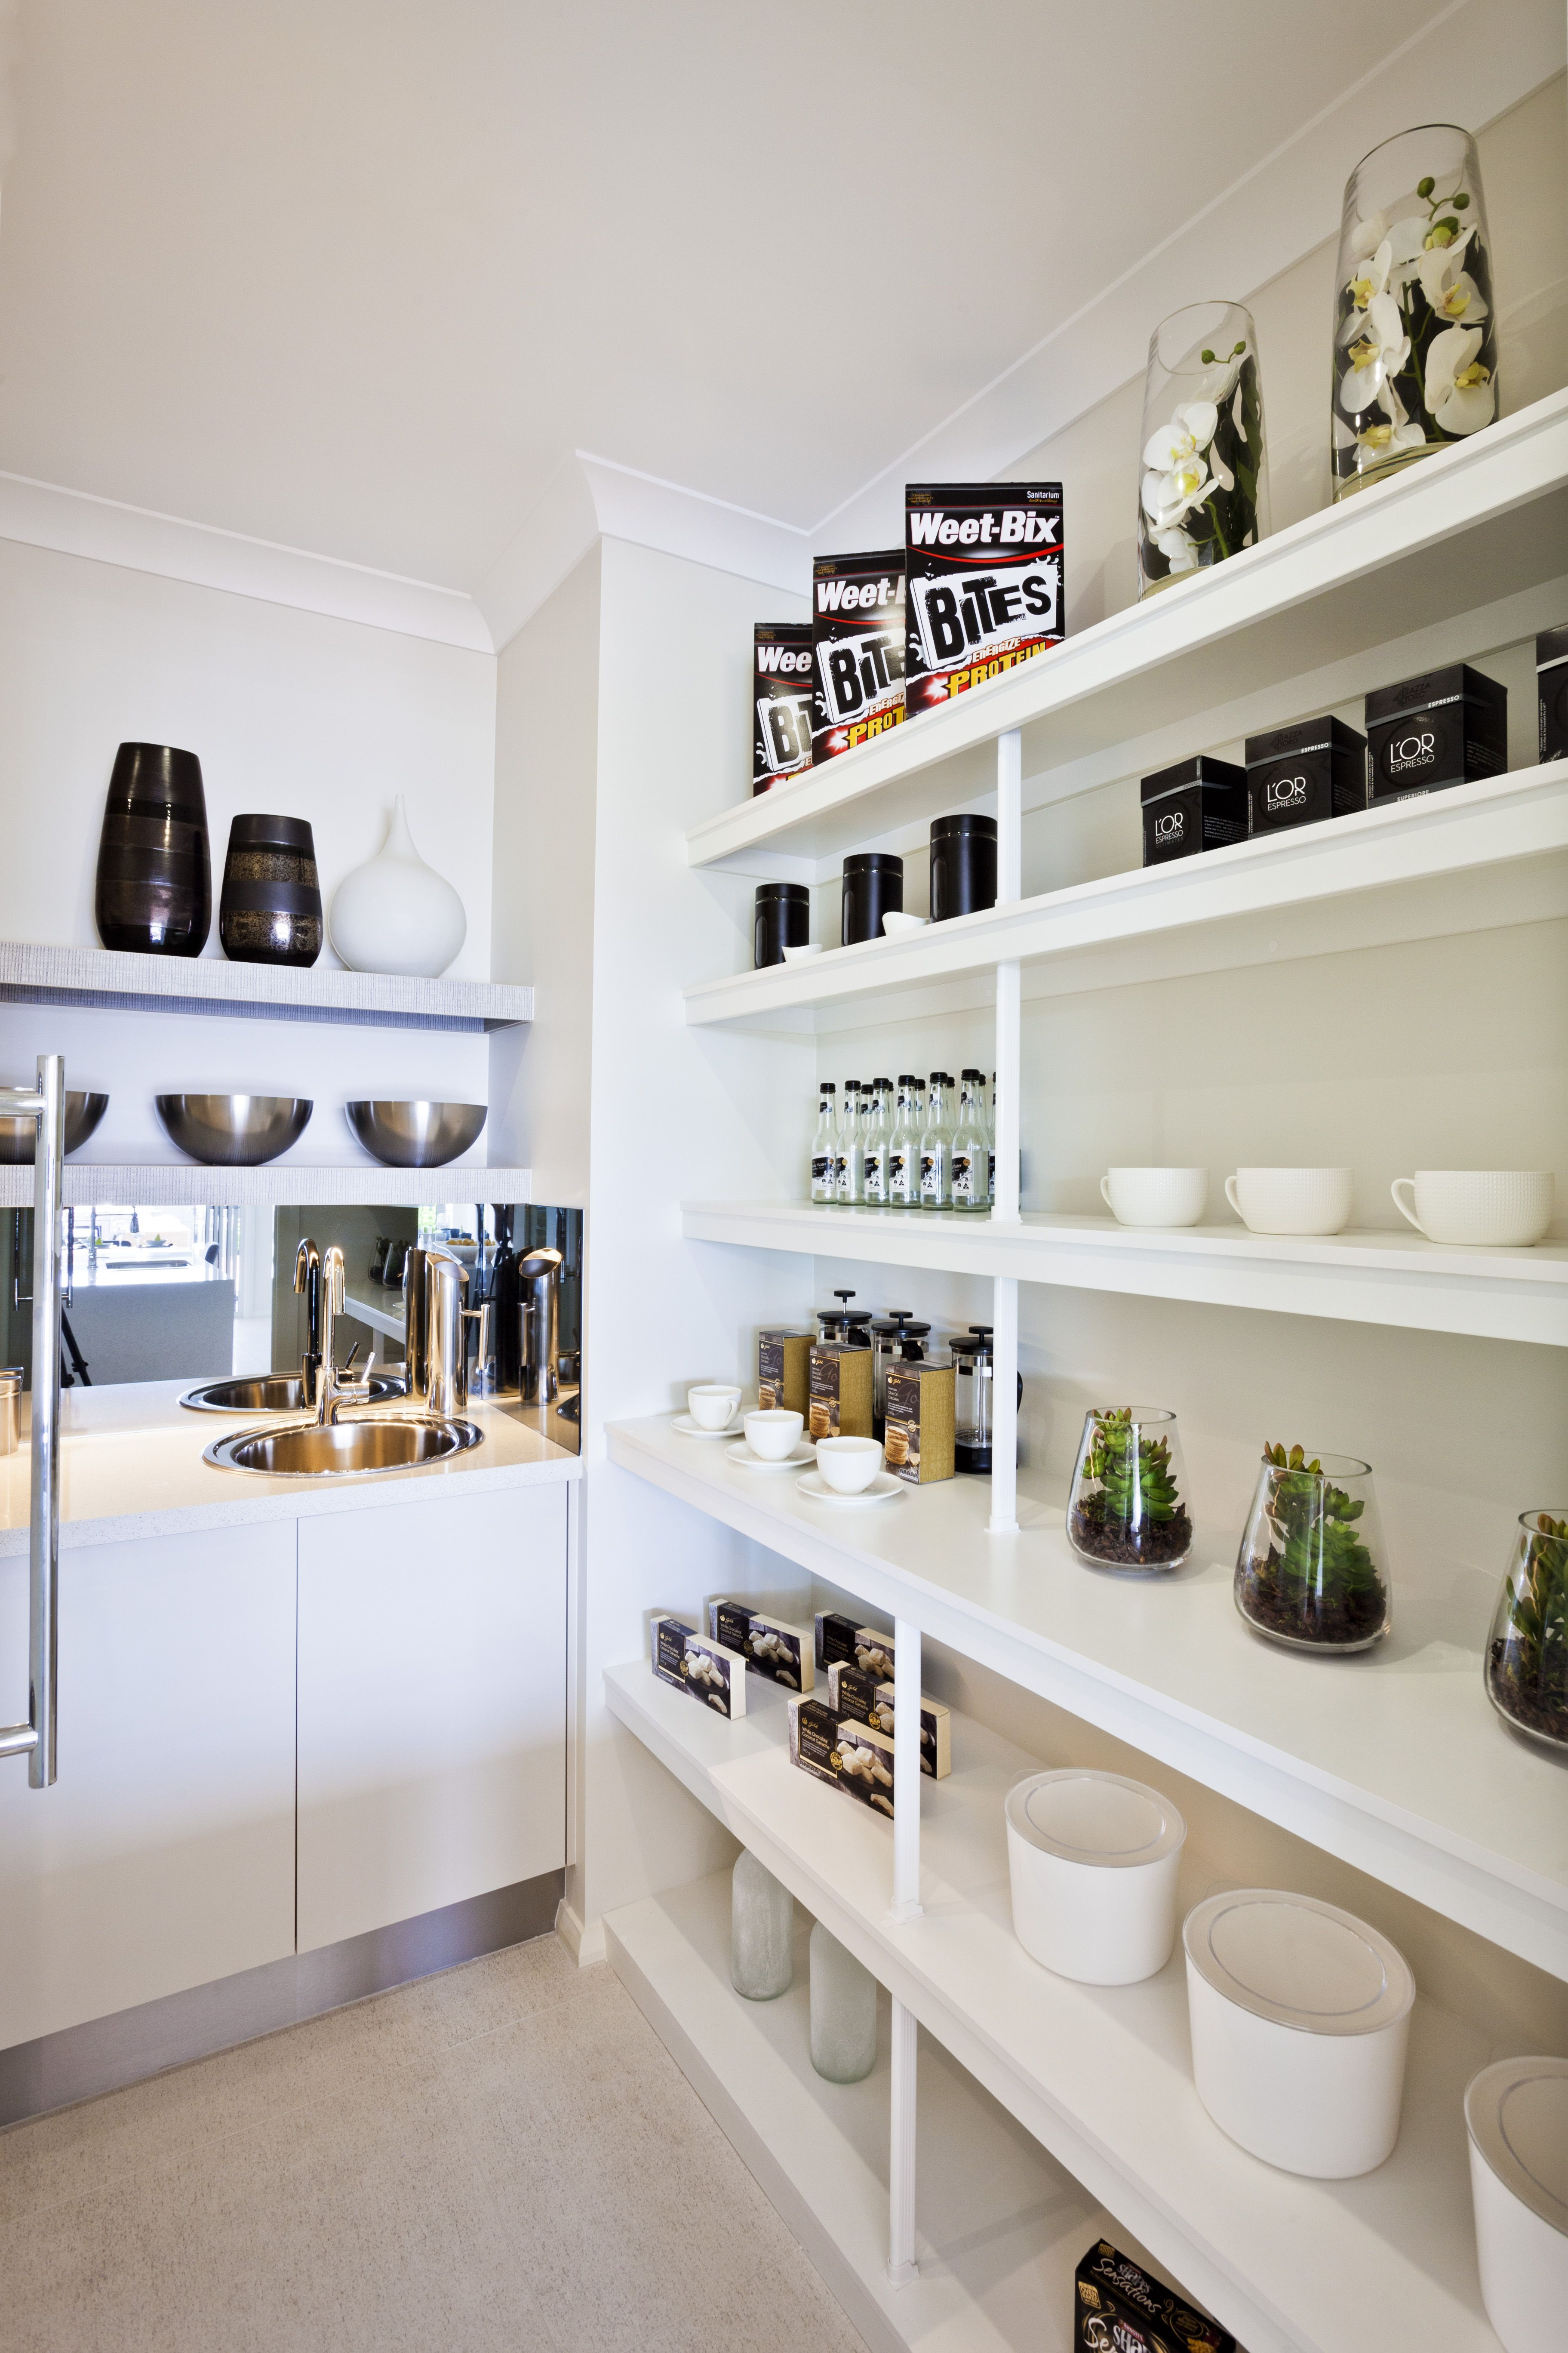 Butler's Pantries combine style and functionality, which